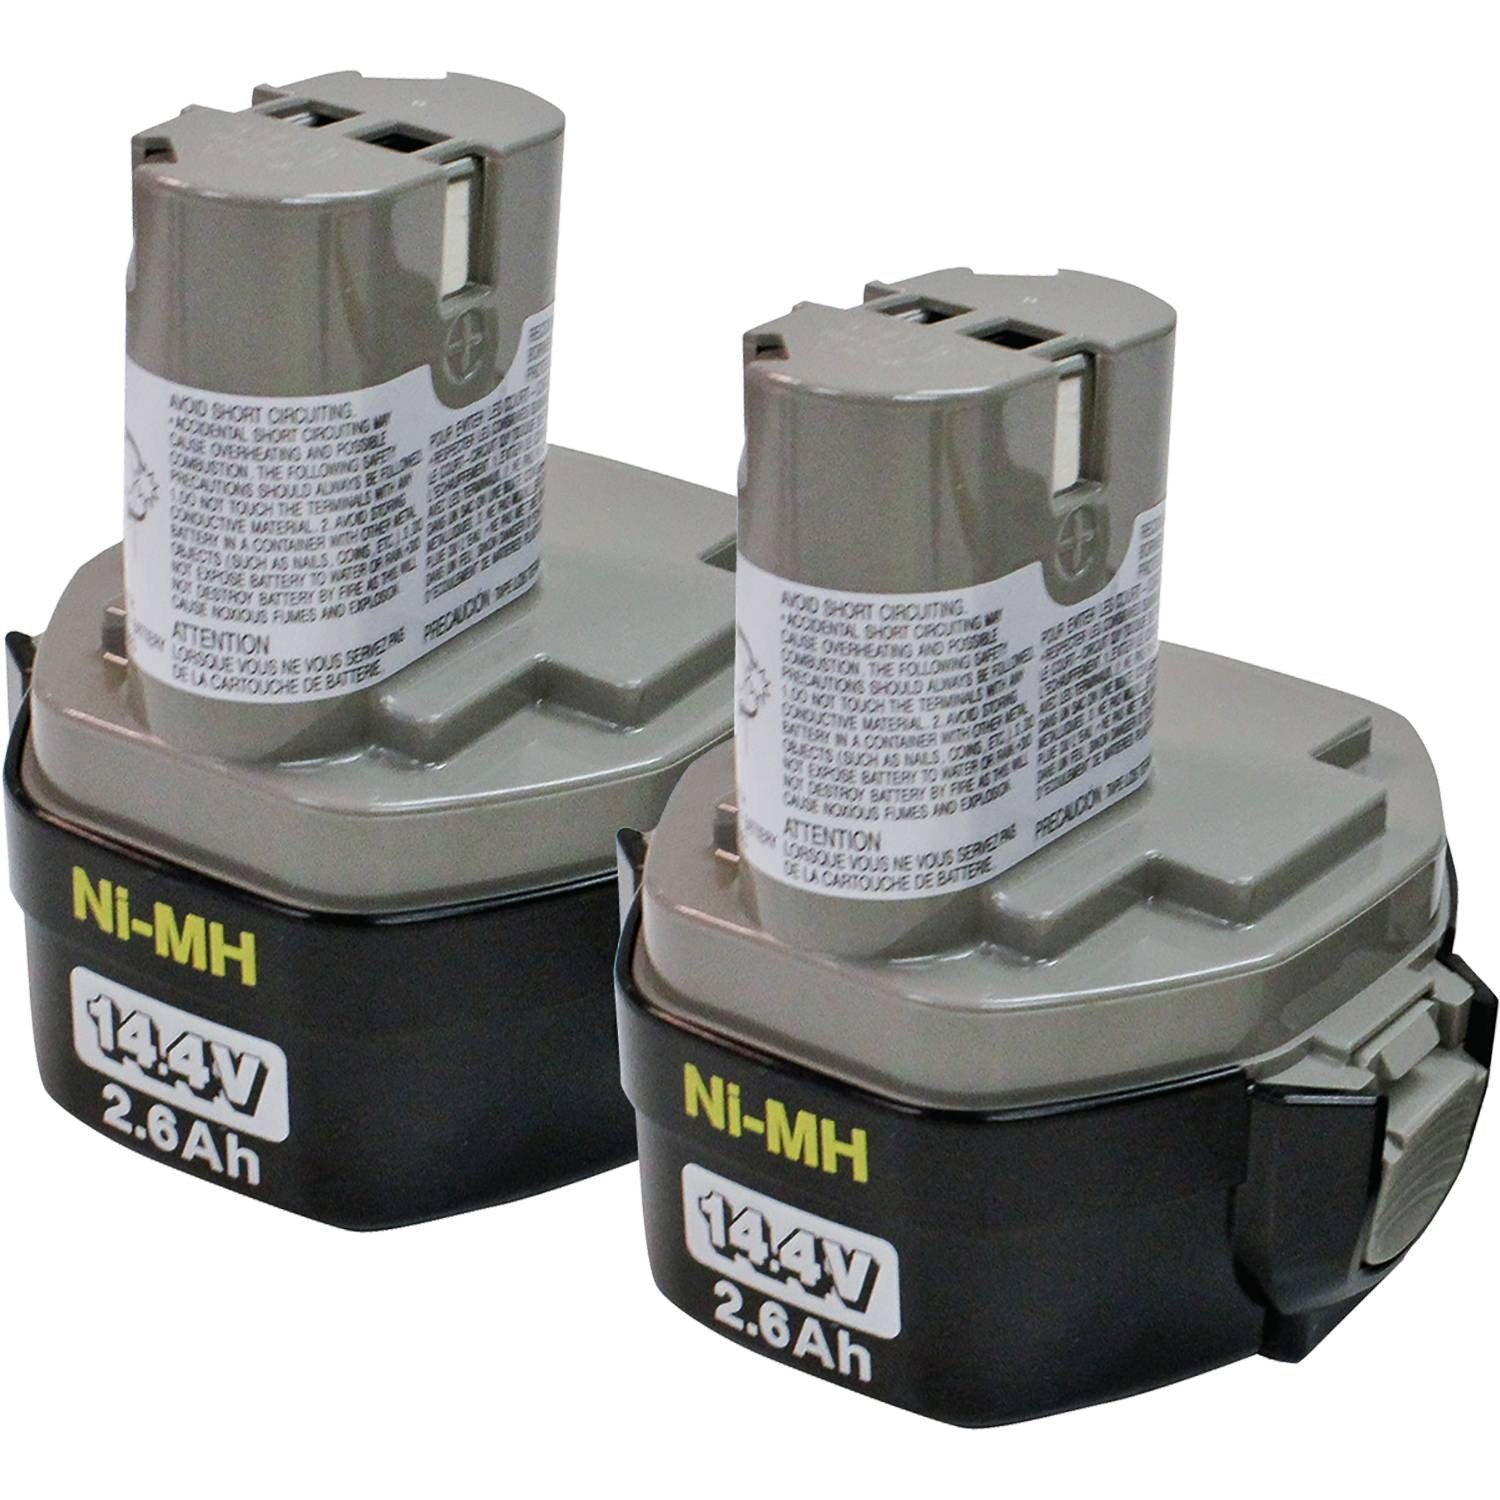 Makita 194157-8 1434 14.4-Volt 2-3/5-Amp Hour NiMH Pod Style Battery, 2-Pack